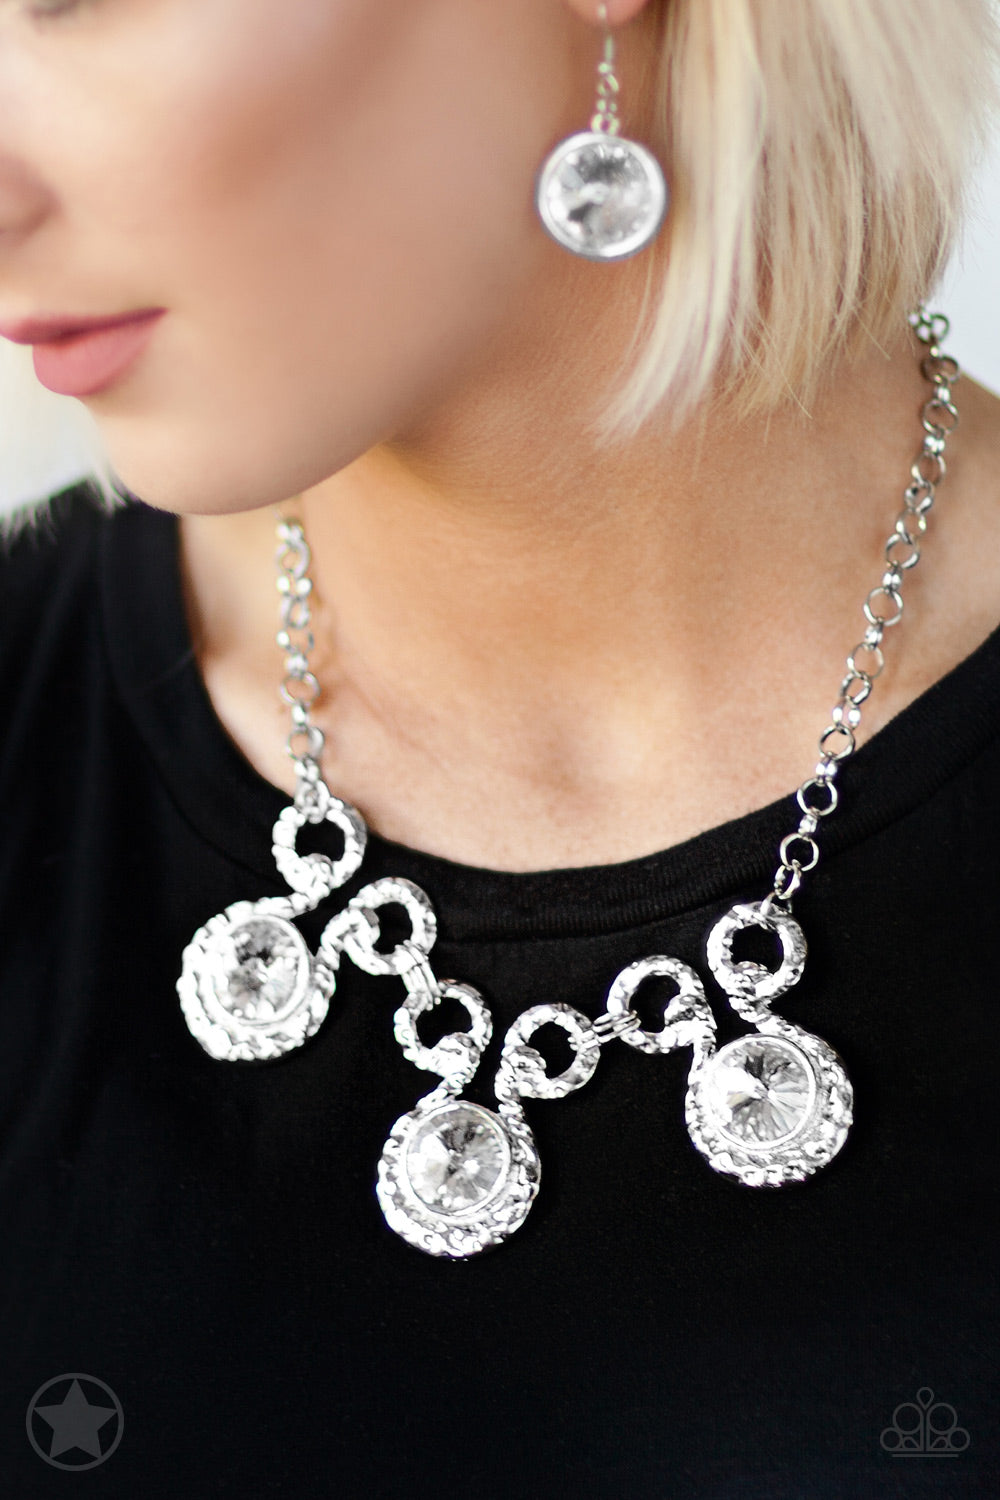 Paparazzi - Hypnotized - Silver Necklace Set - Classy Jewels by Linda